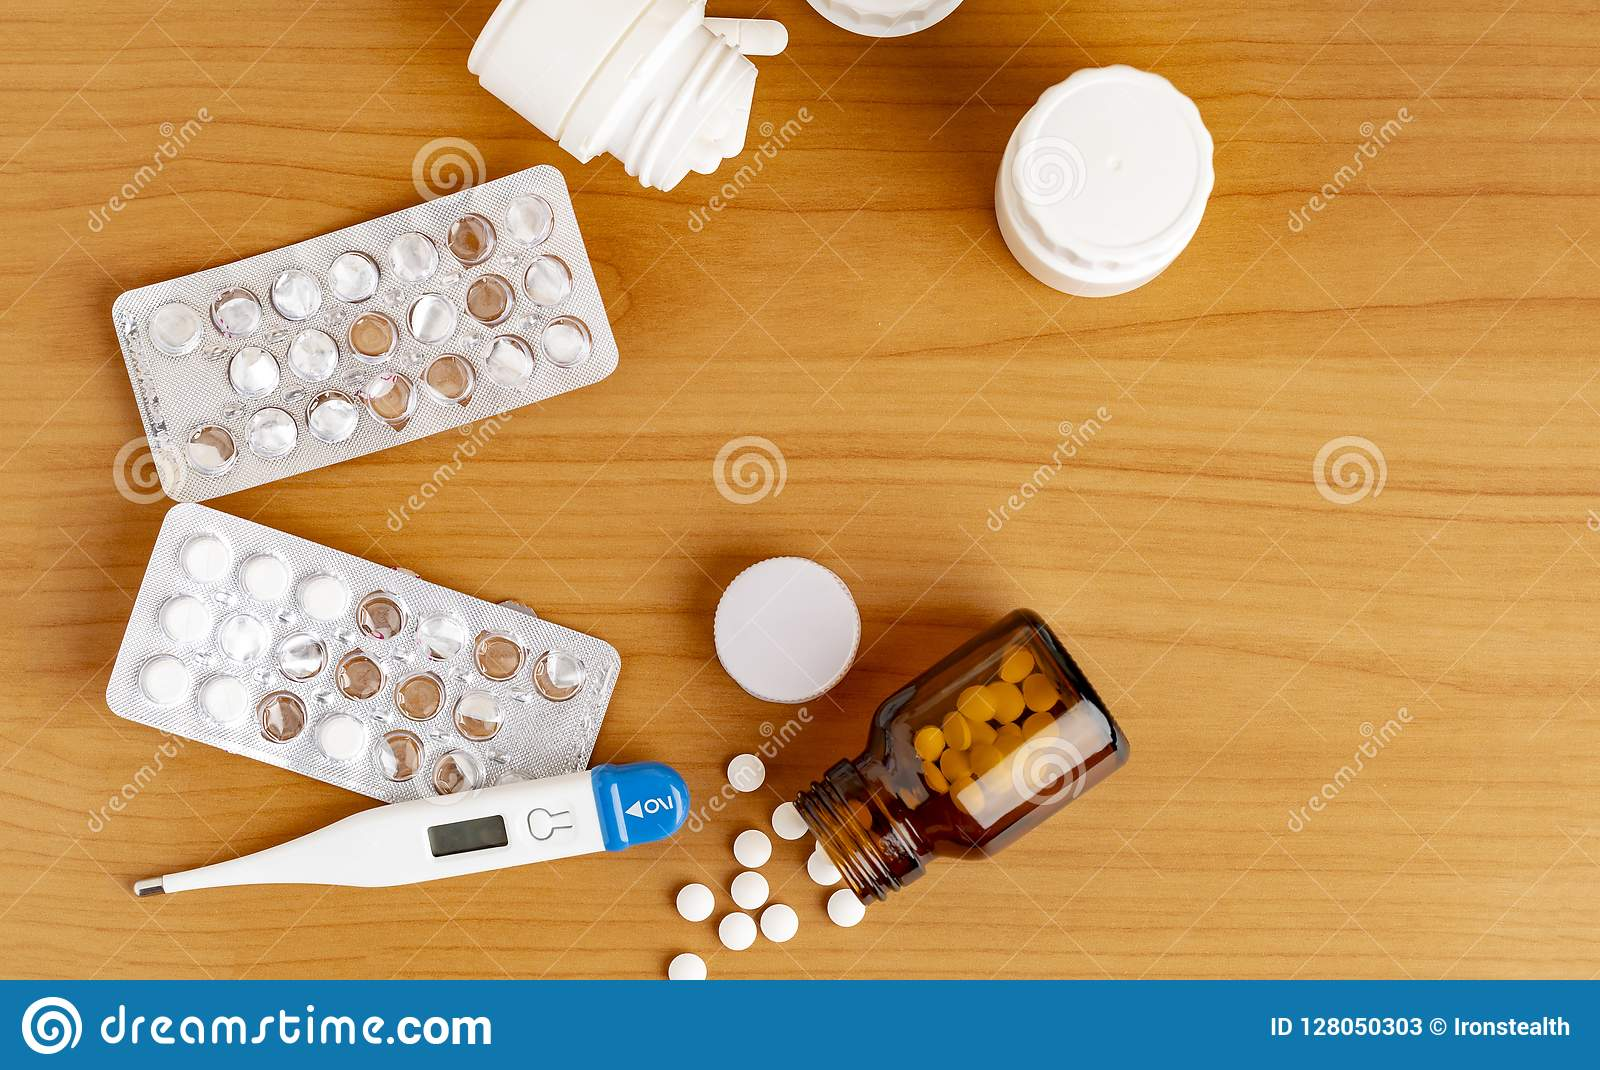 Digital thermometer and various medicine